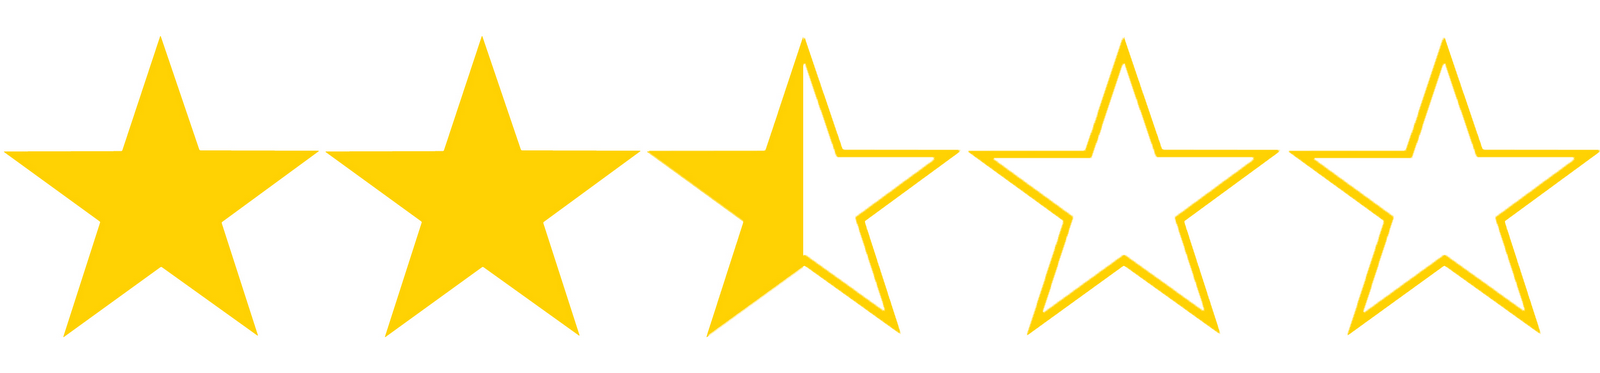 Image result for TWO AND A HALF STARS